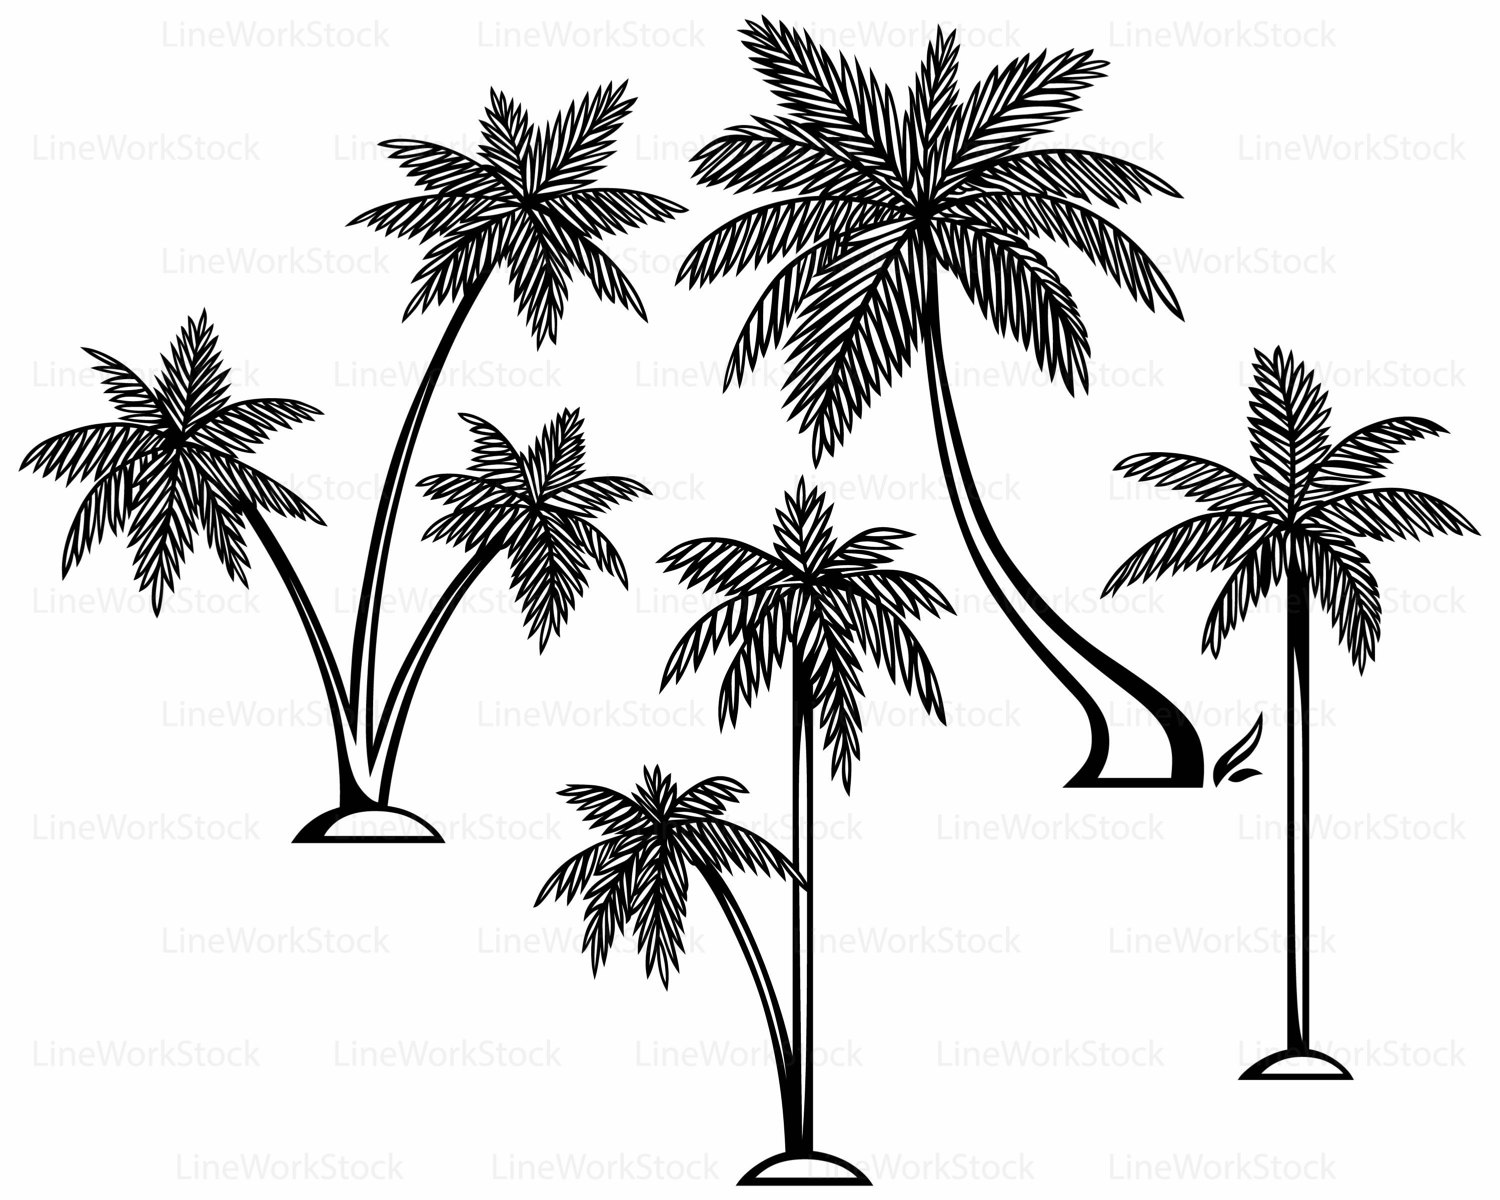 1500x1200 Palm Leaves Svg,palm Leaves Clipart,palm Svg,tree Silhouette,palm